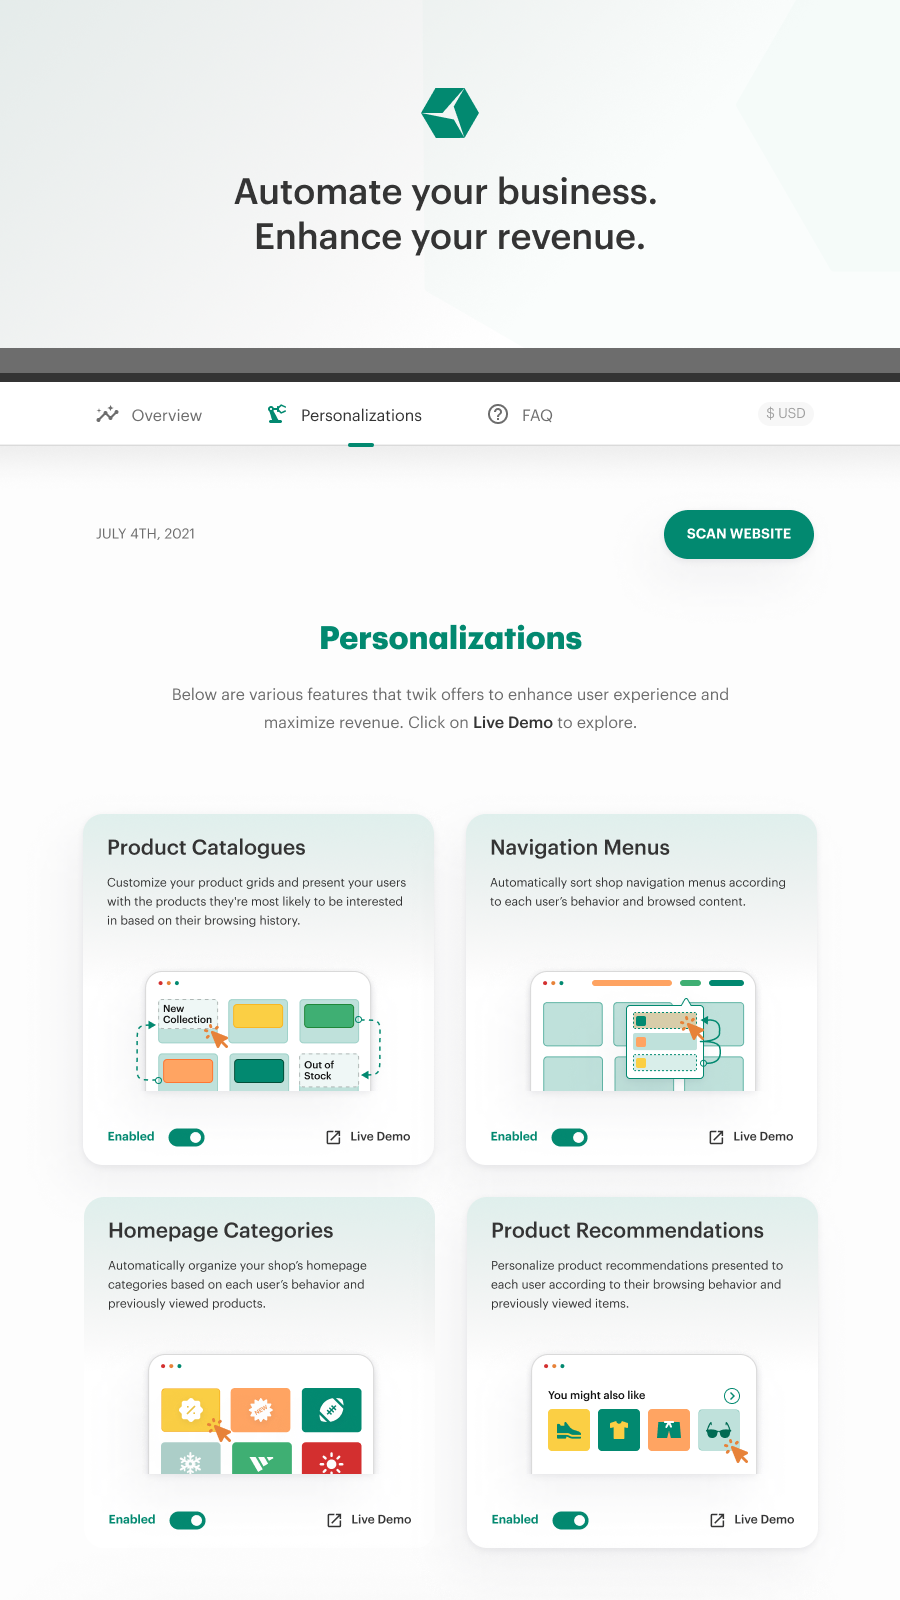 Enable twik and personalization automations in your shop